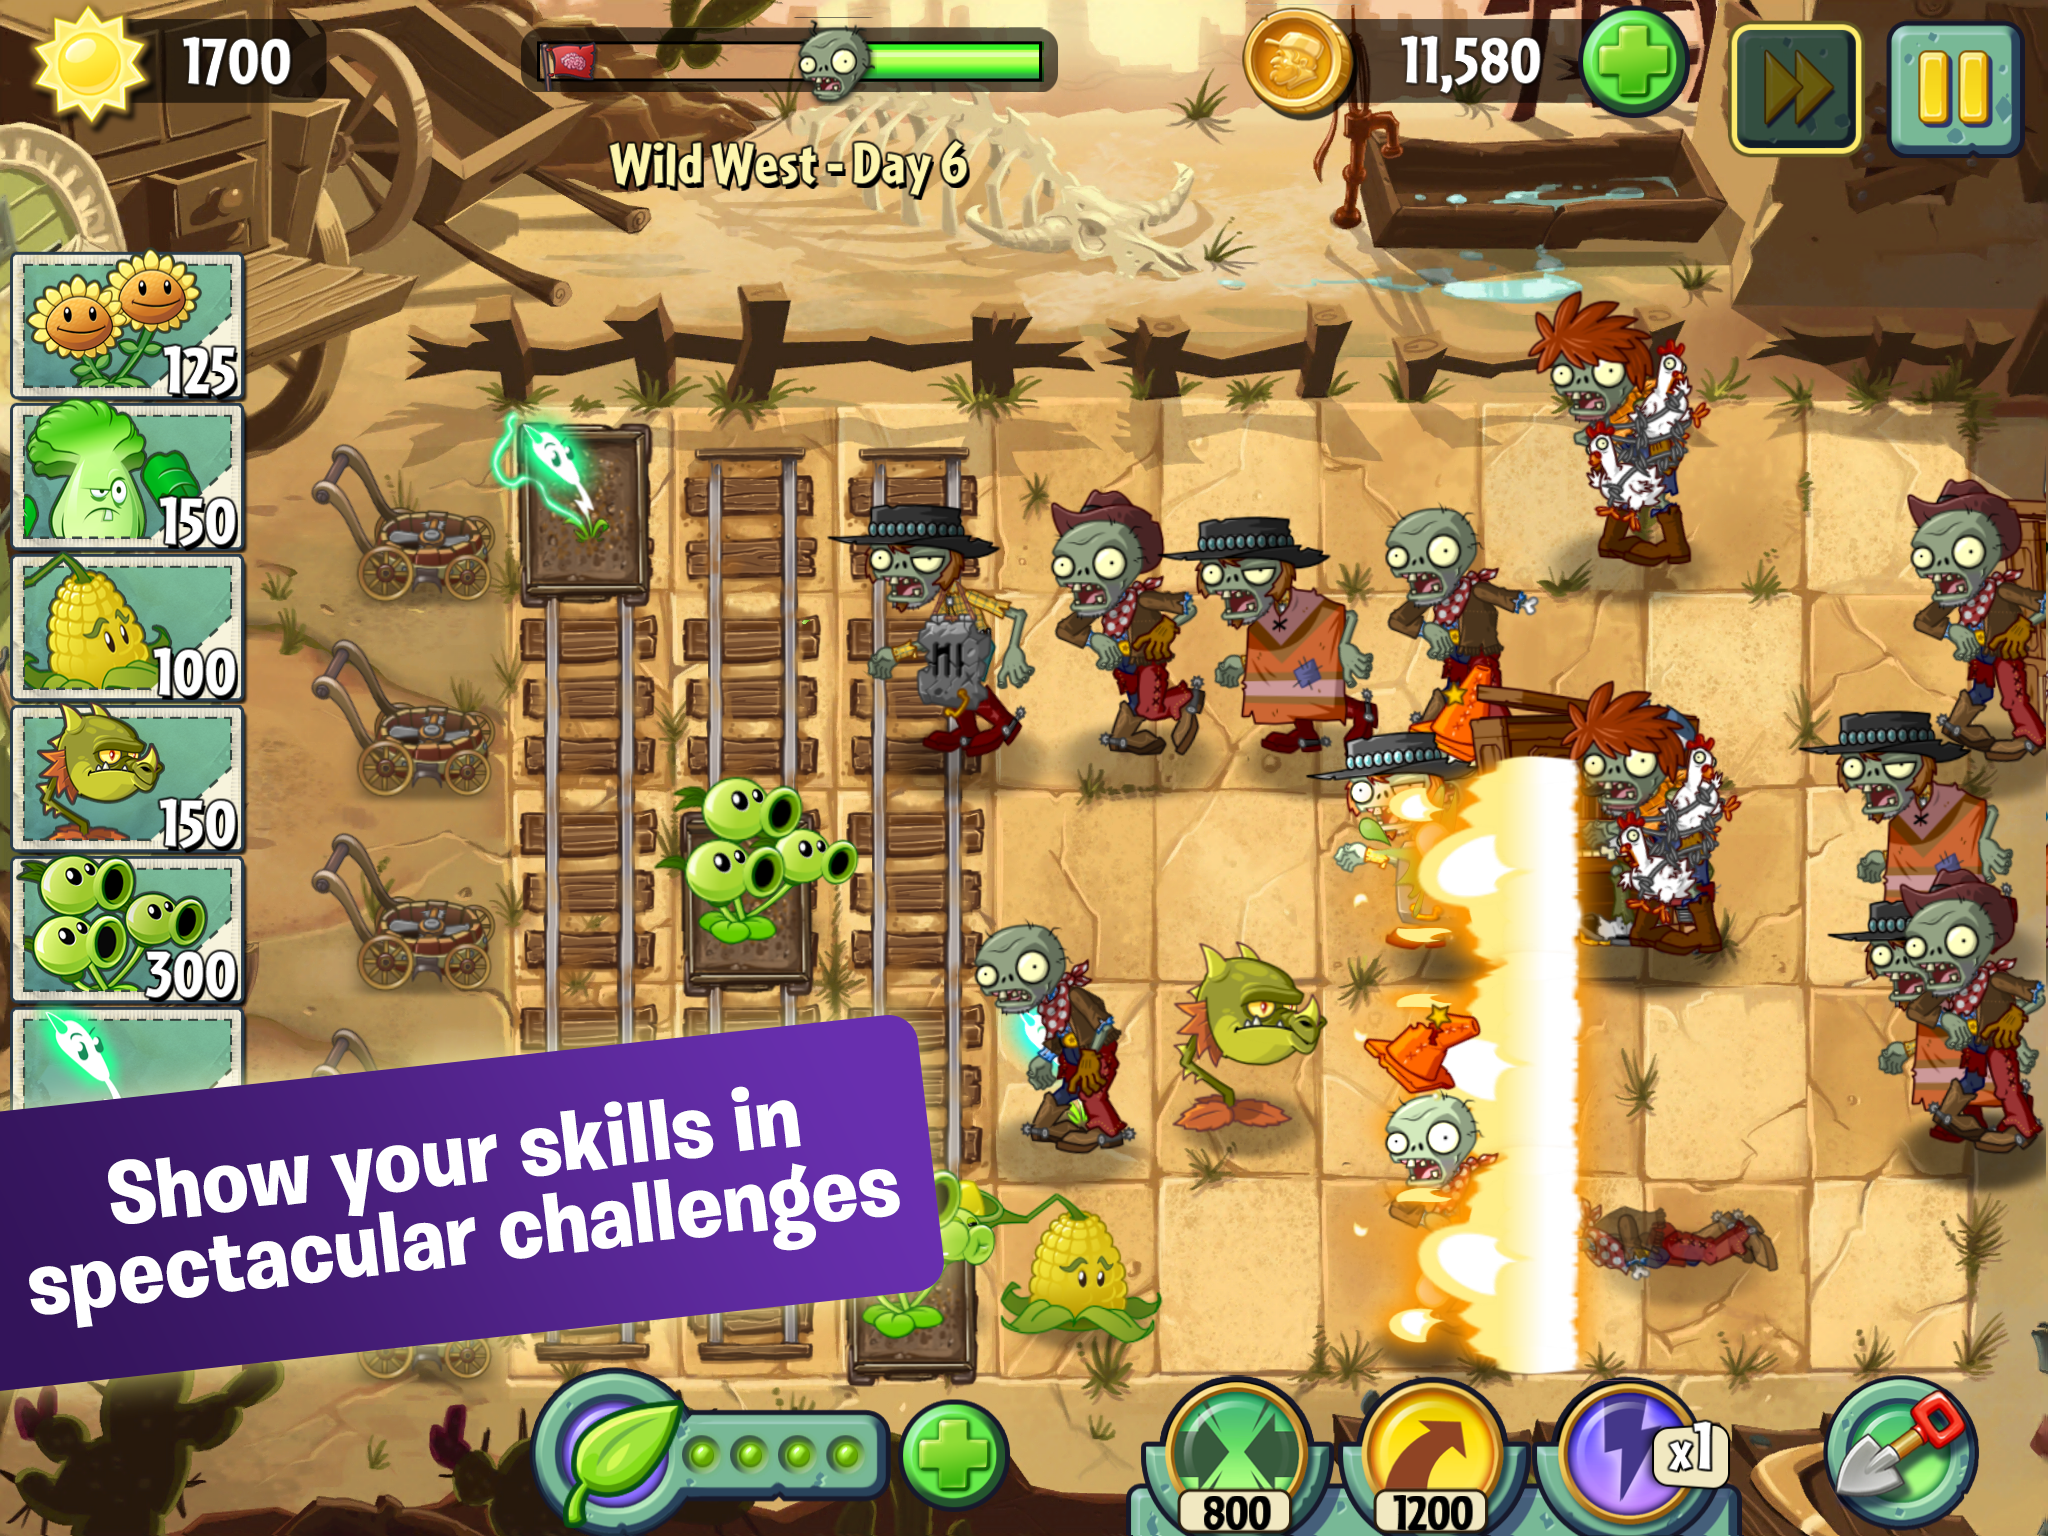 plants vs zombies 2 apk free download for pc